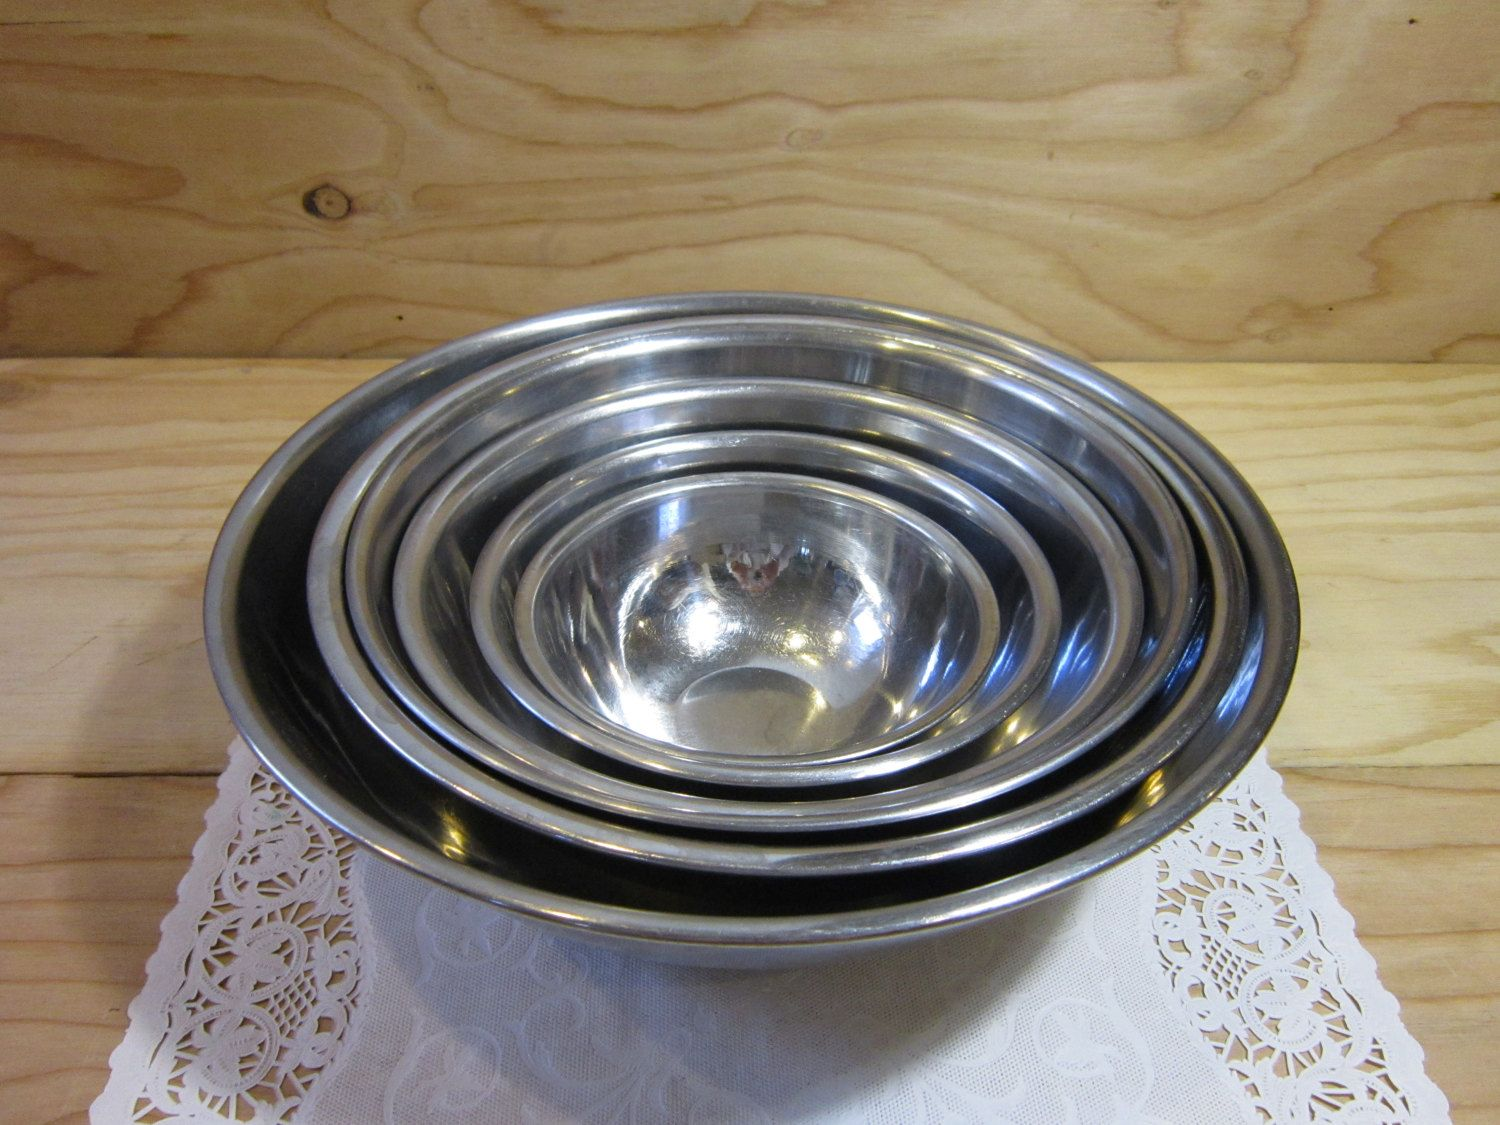 Set of 6 Vintage Stainless Steel Nesting Mixing Bowls * Stainless ...